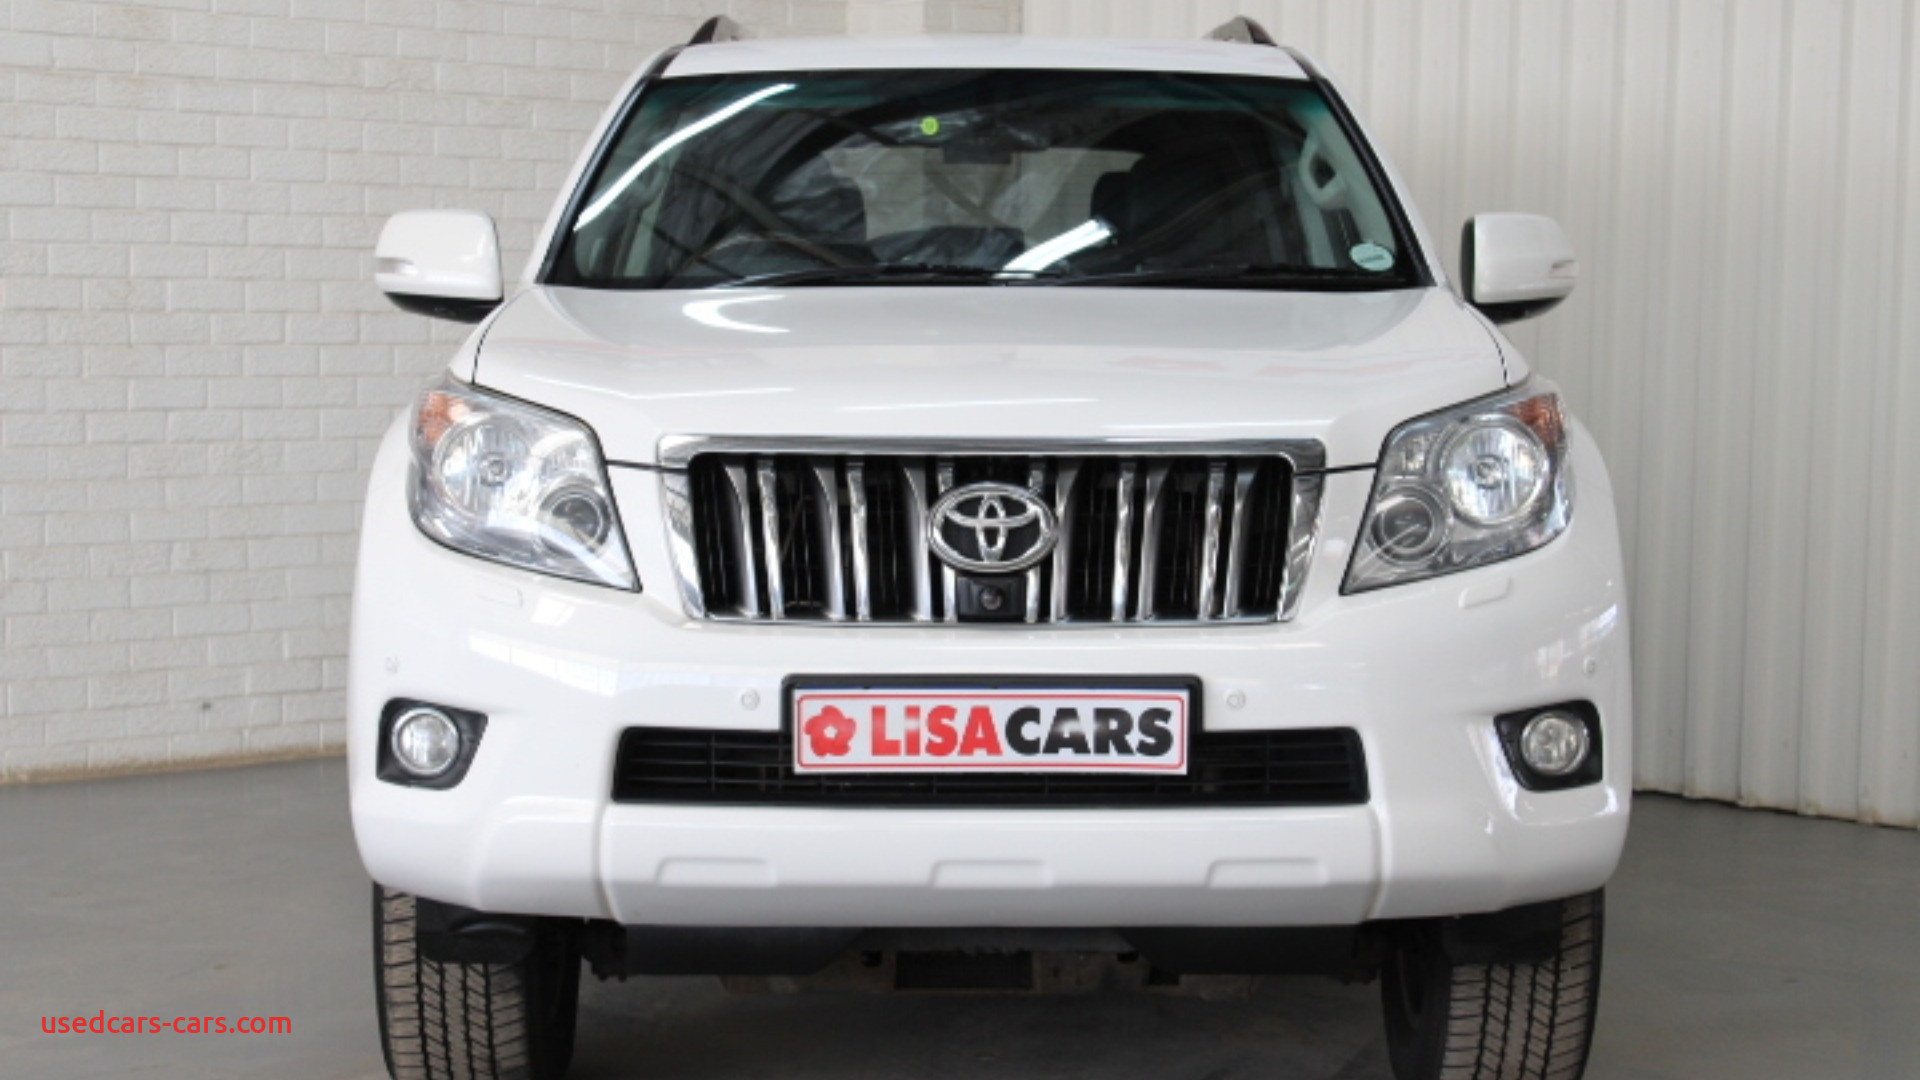 Used Cars for Sale Za Luxury toyota Land Cruiser Prado Prado Vx 3 0d A T for Sale In